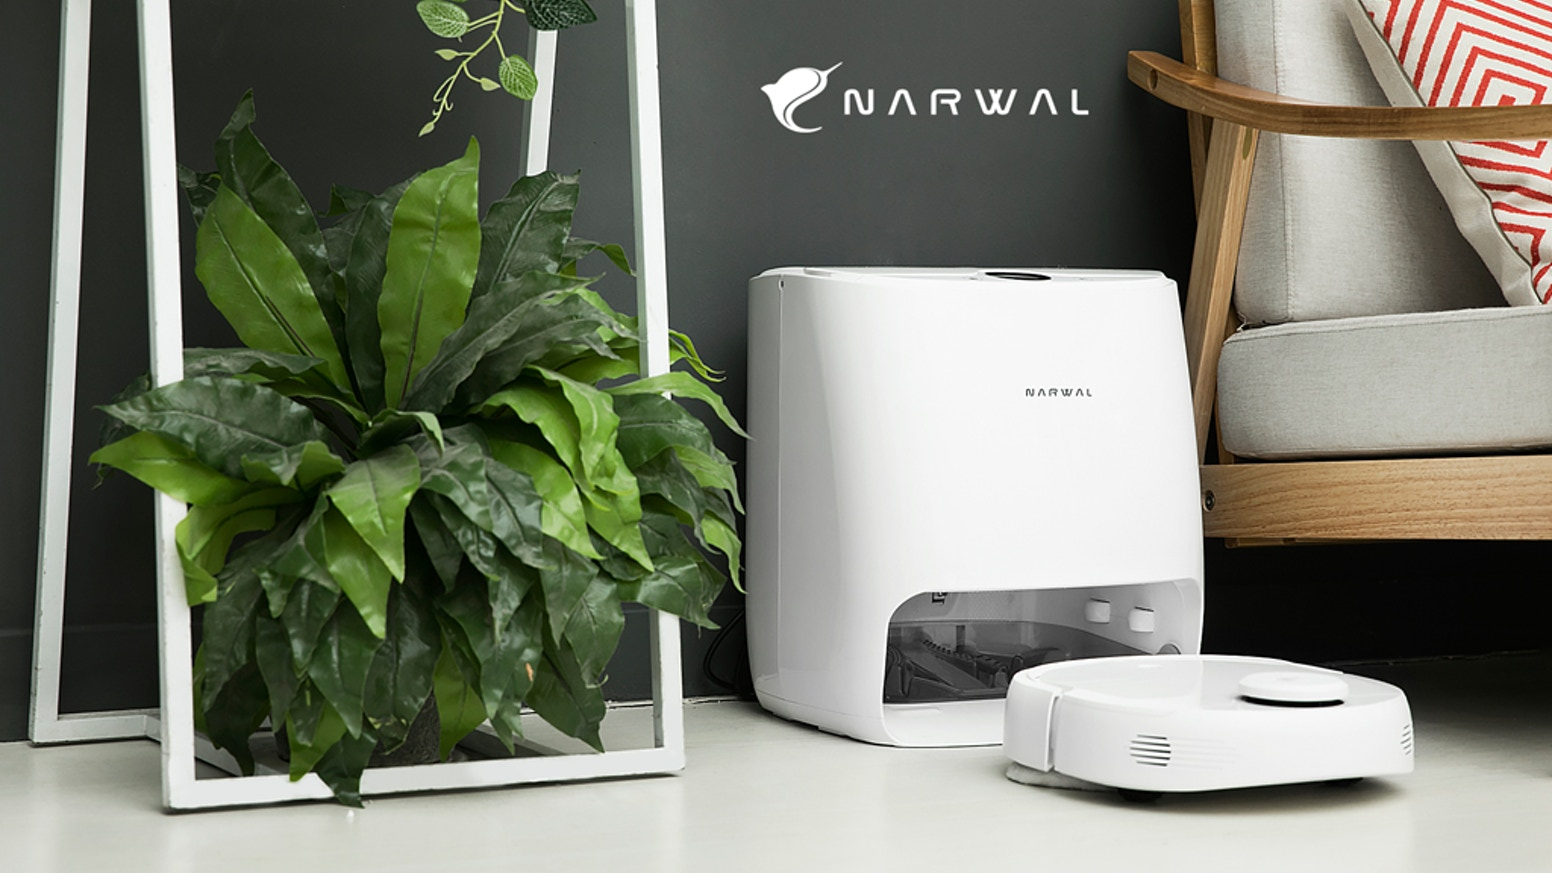 Narwal mop and vacuum robot (best smart home devices)